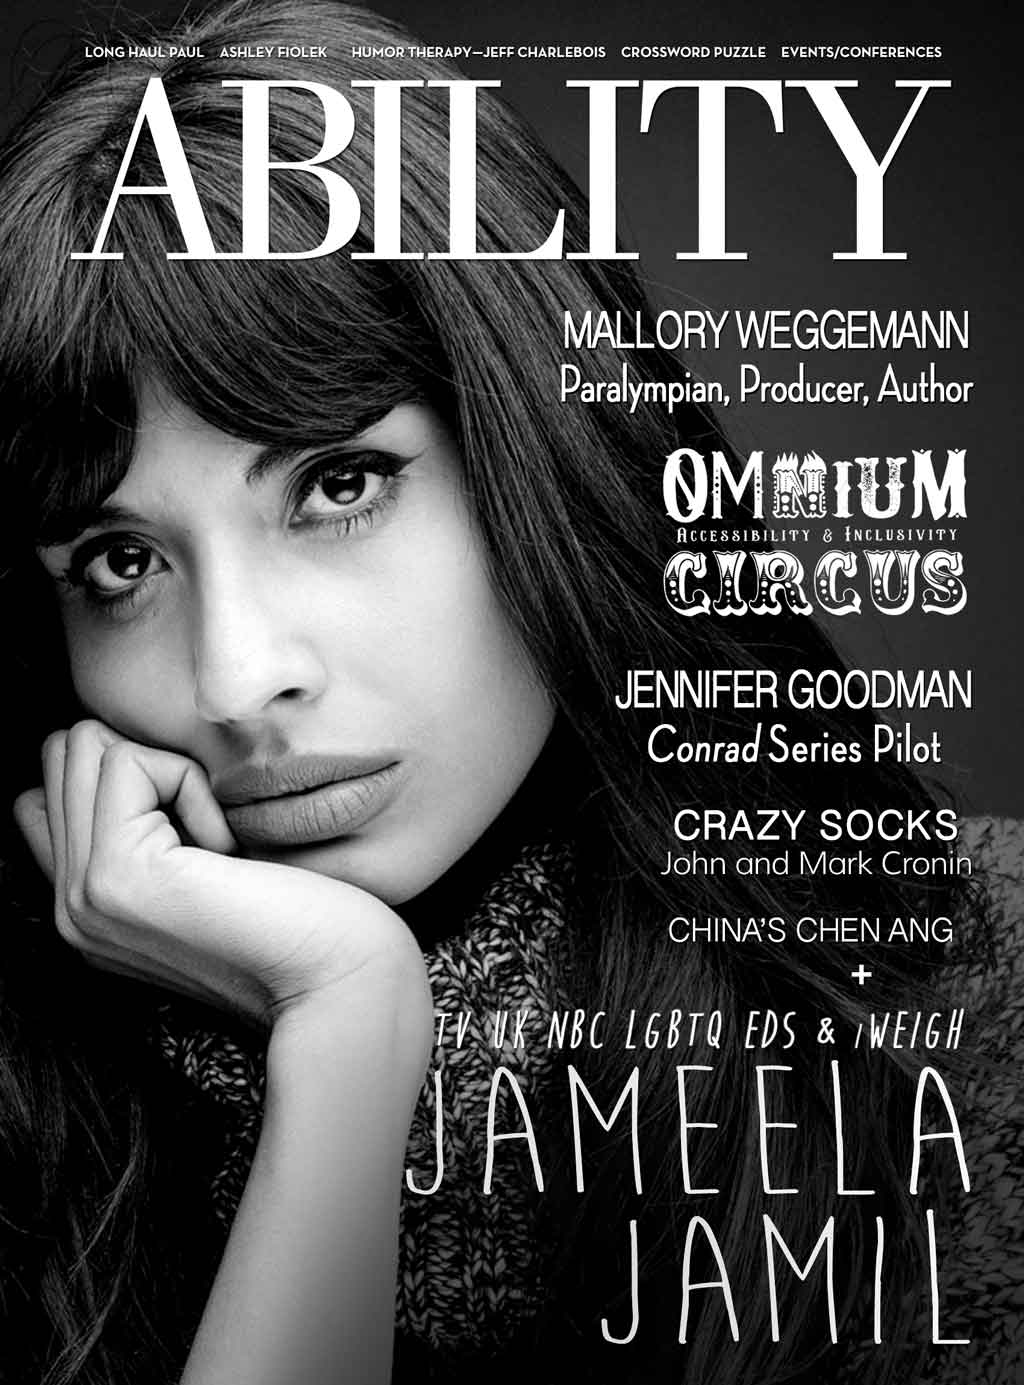 Jameela Jamil Issue